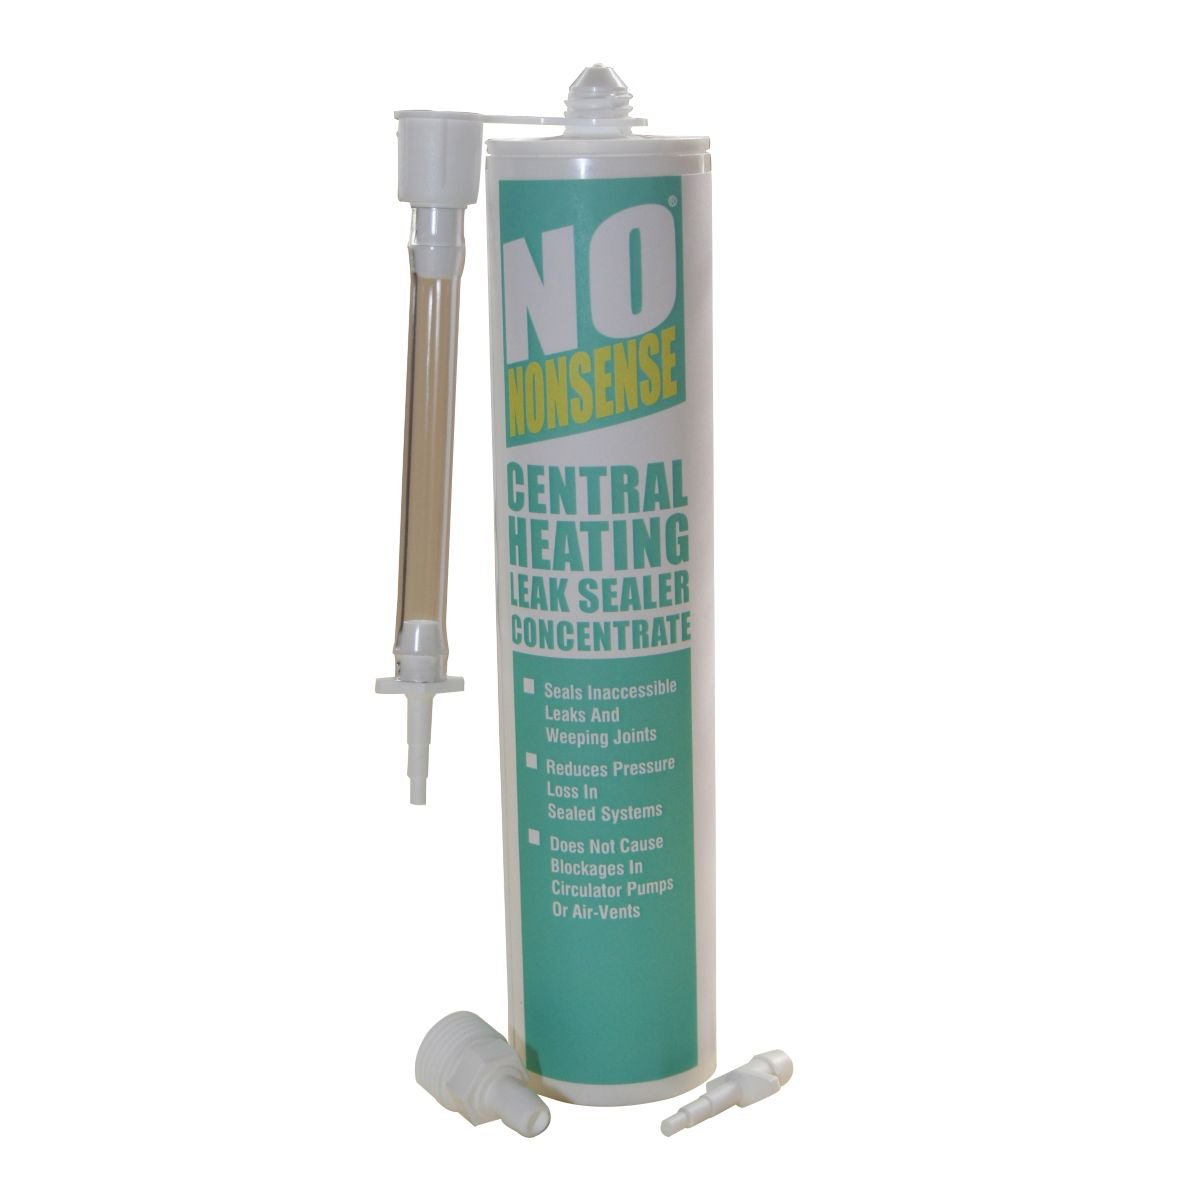 No Nonsense Central Heating Leak Sealer 310ml Concentrate: Amazon.co ...